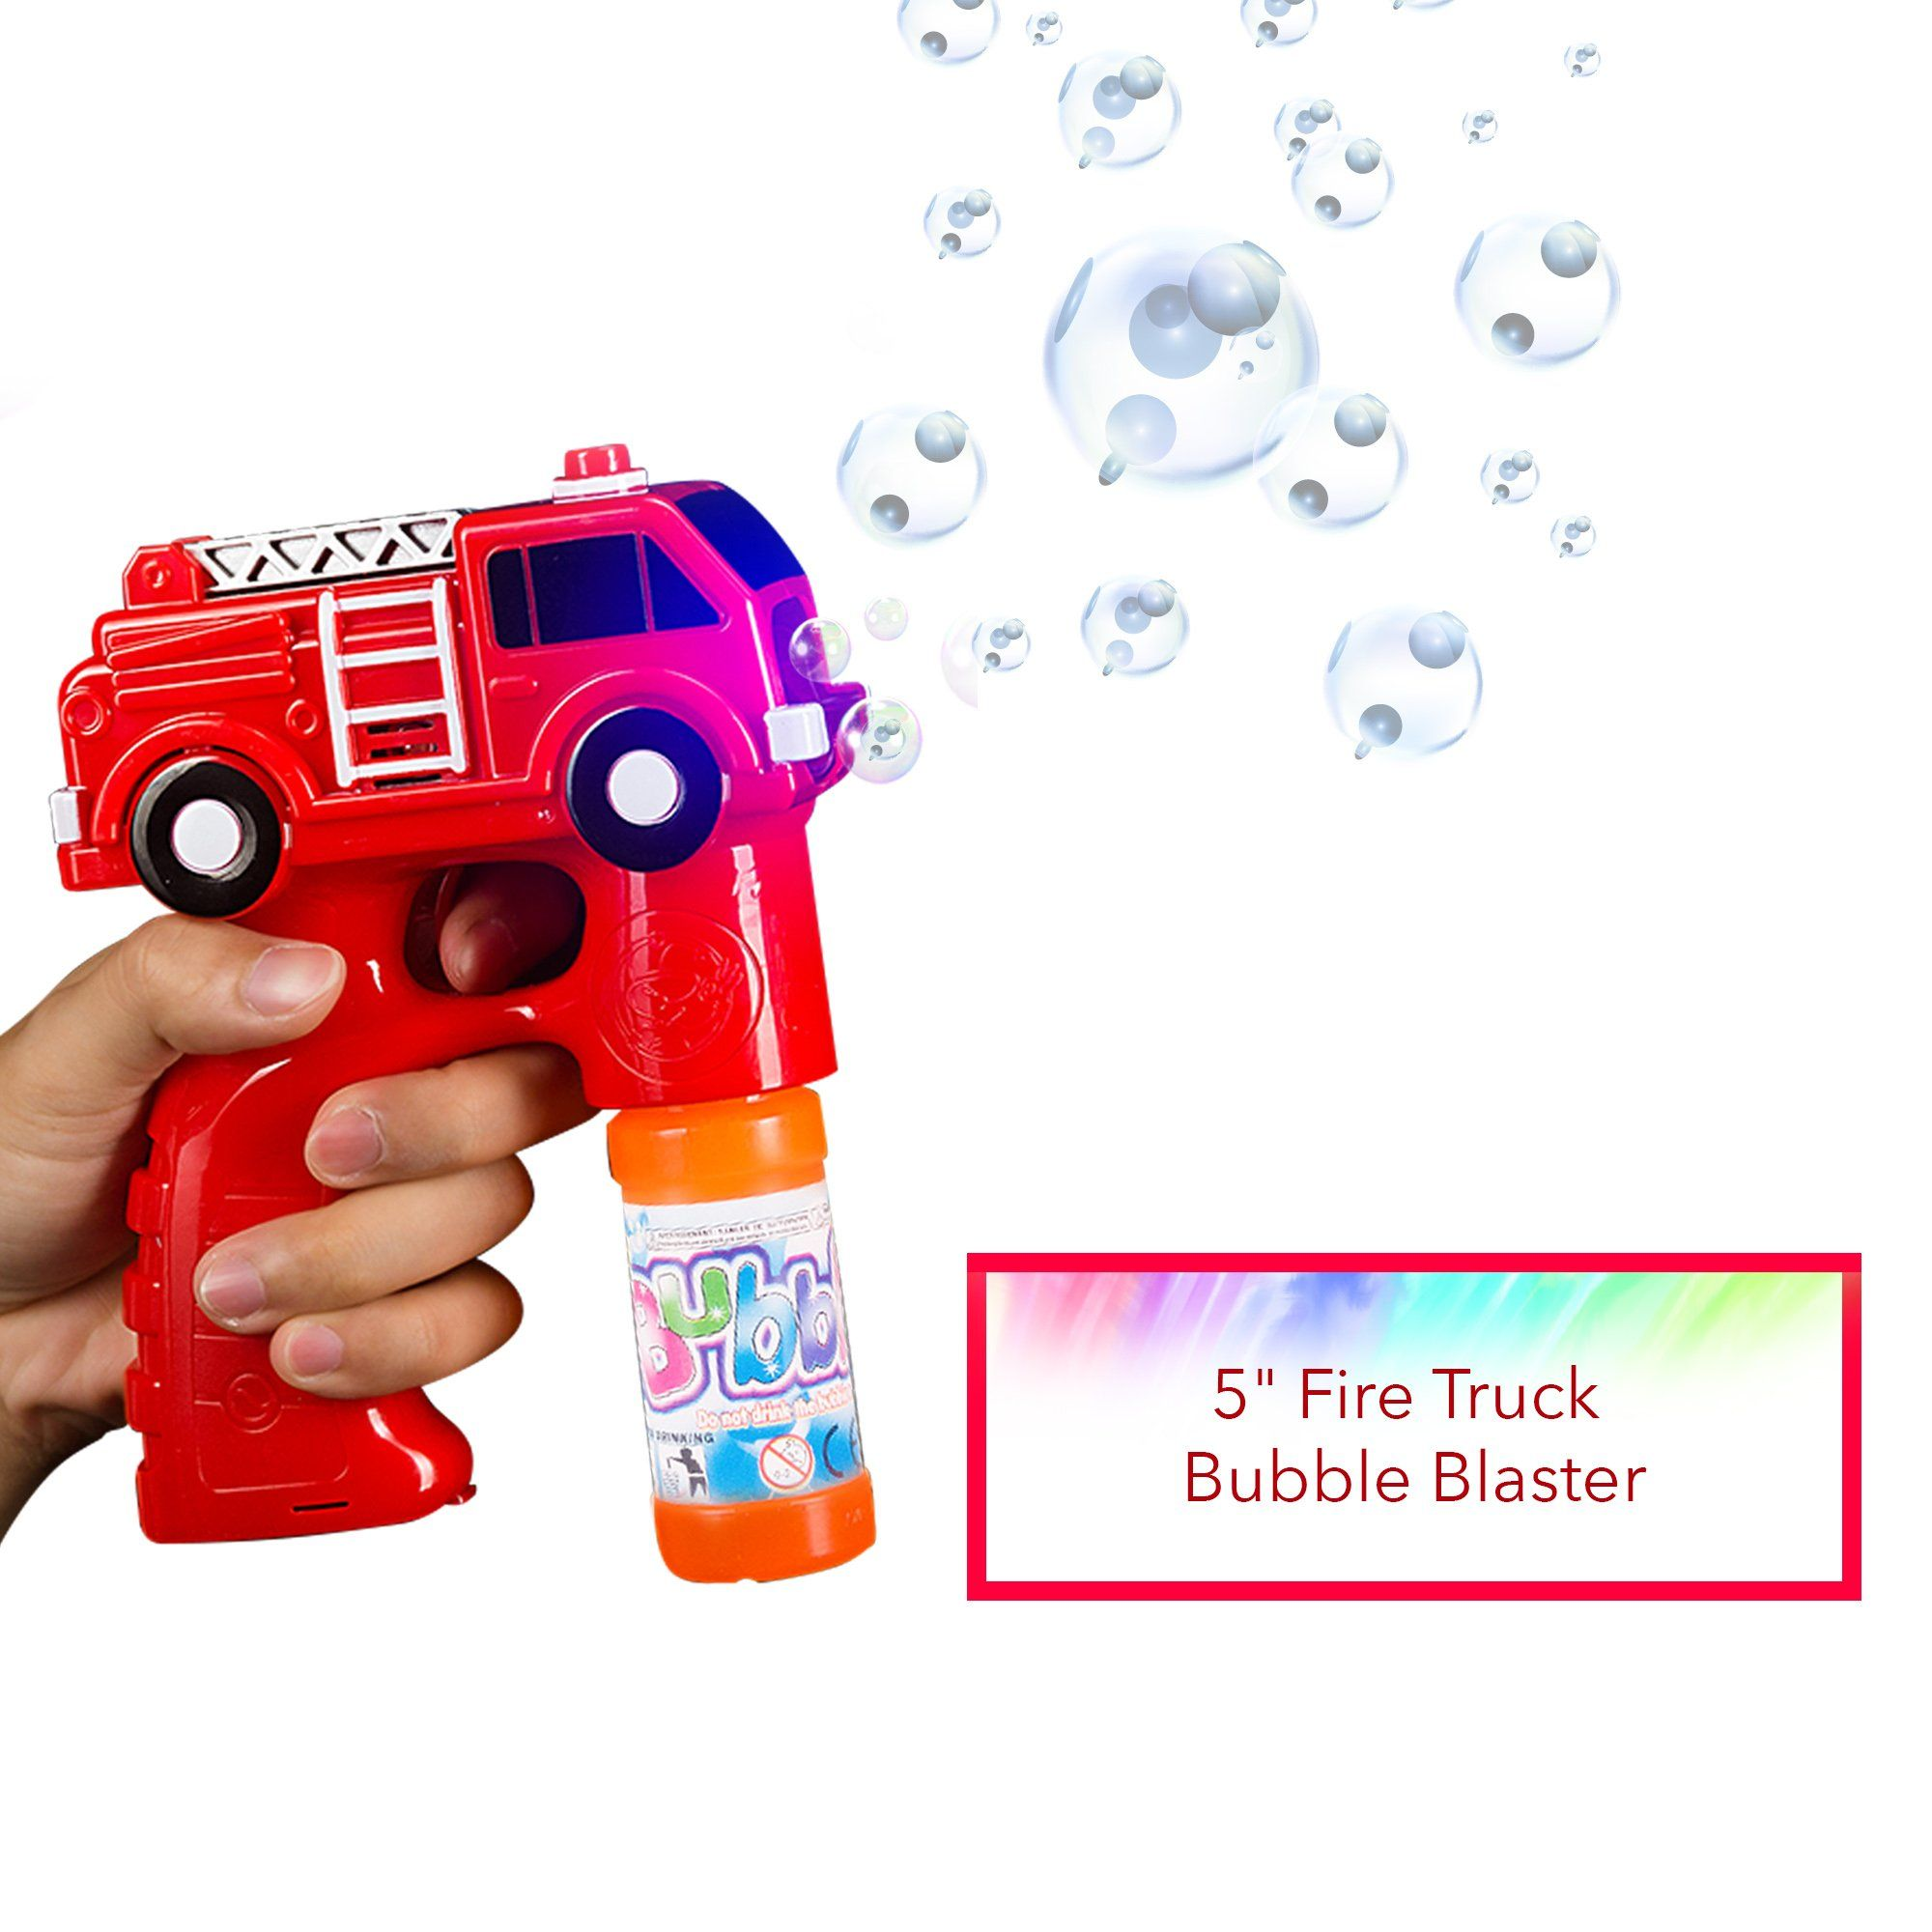 Water guns for prizes